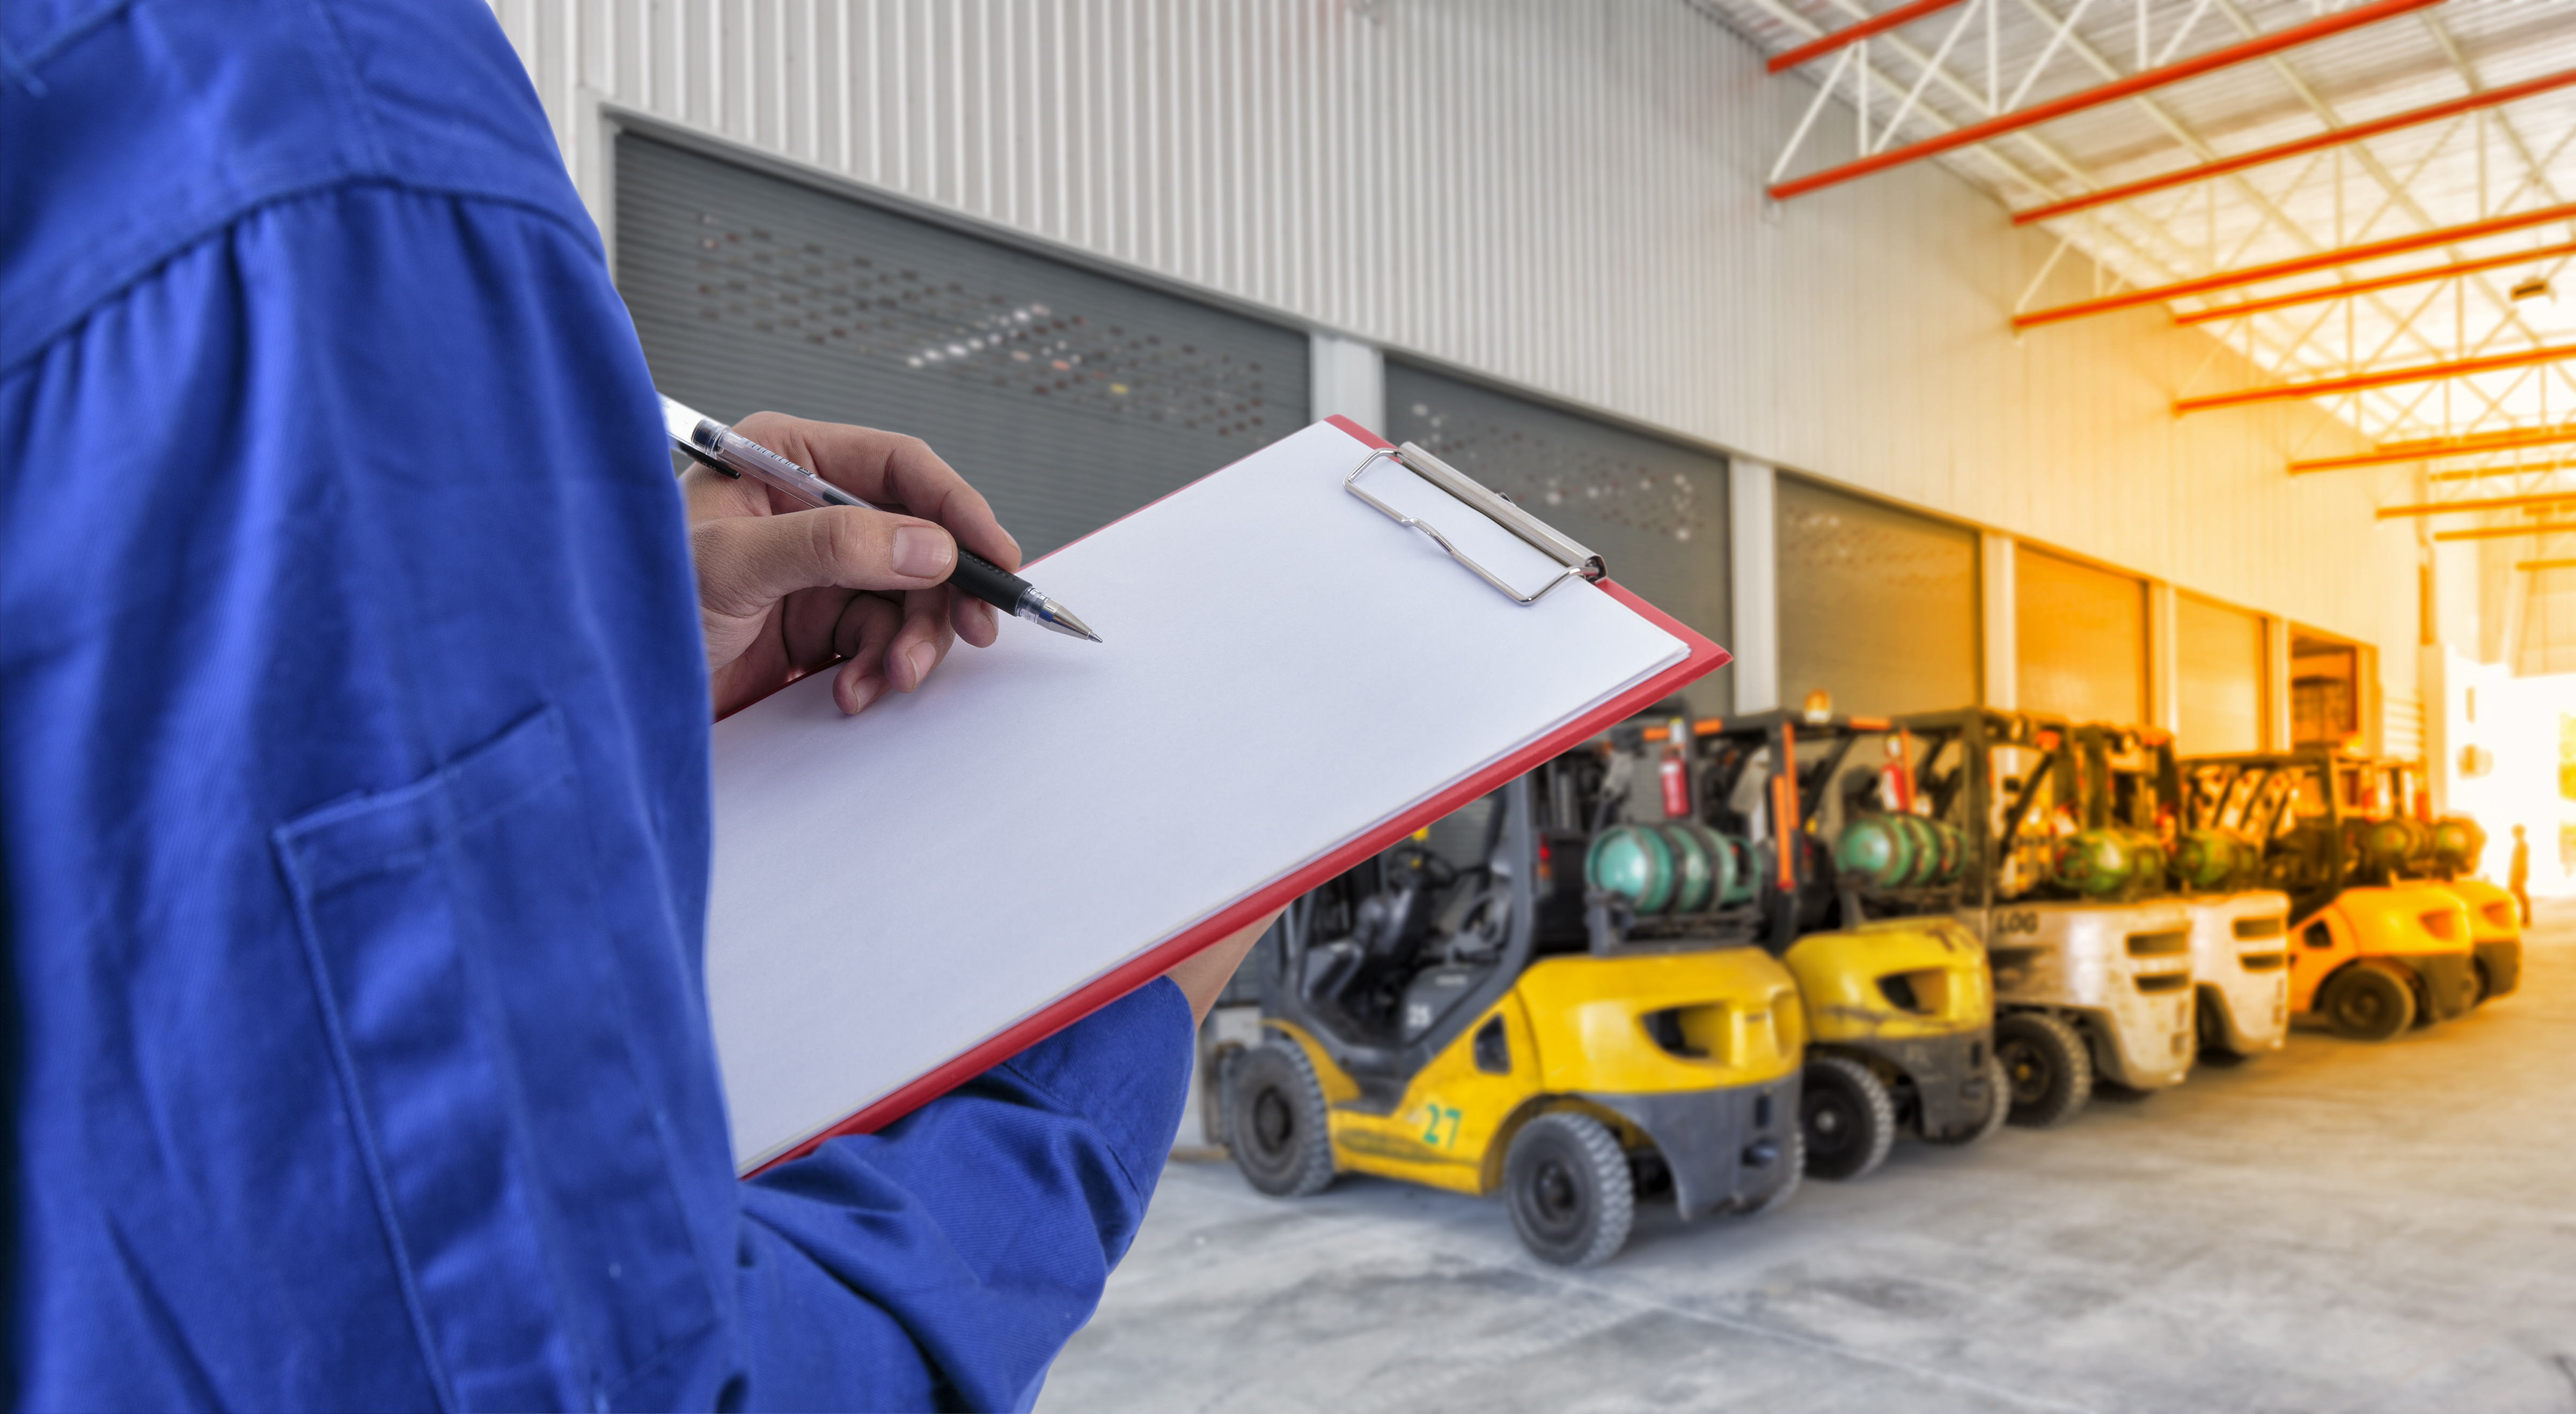 technician Check list forklift at warehouse